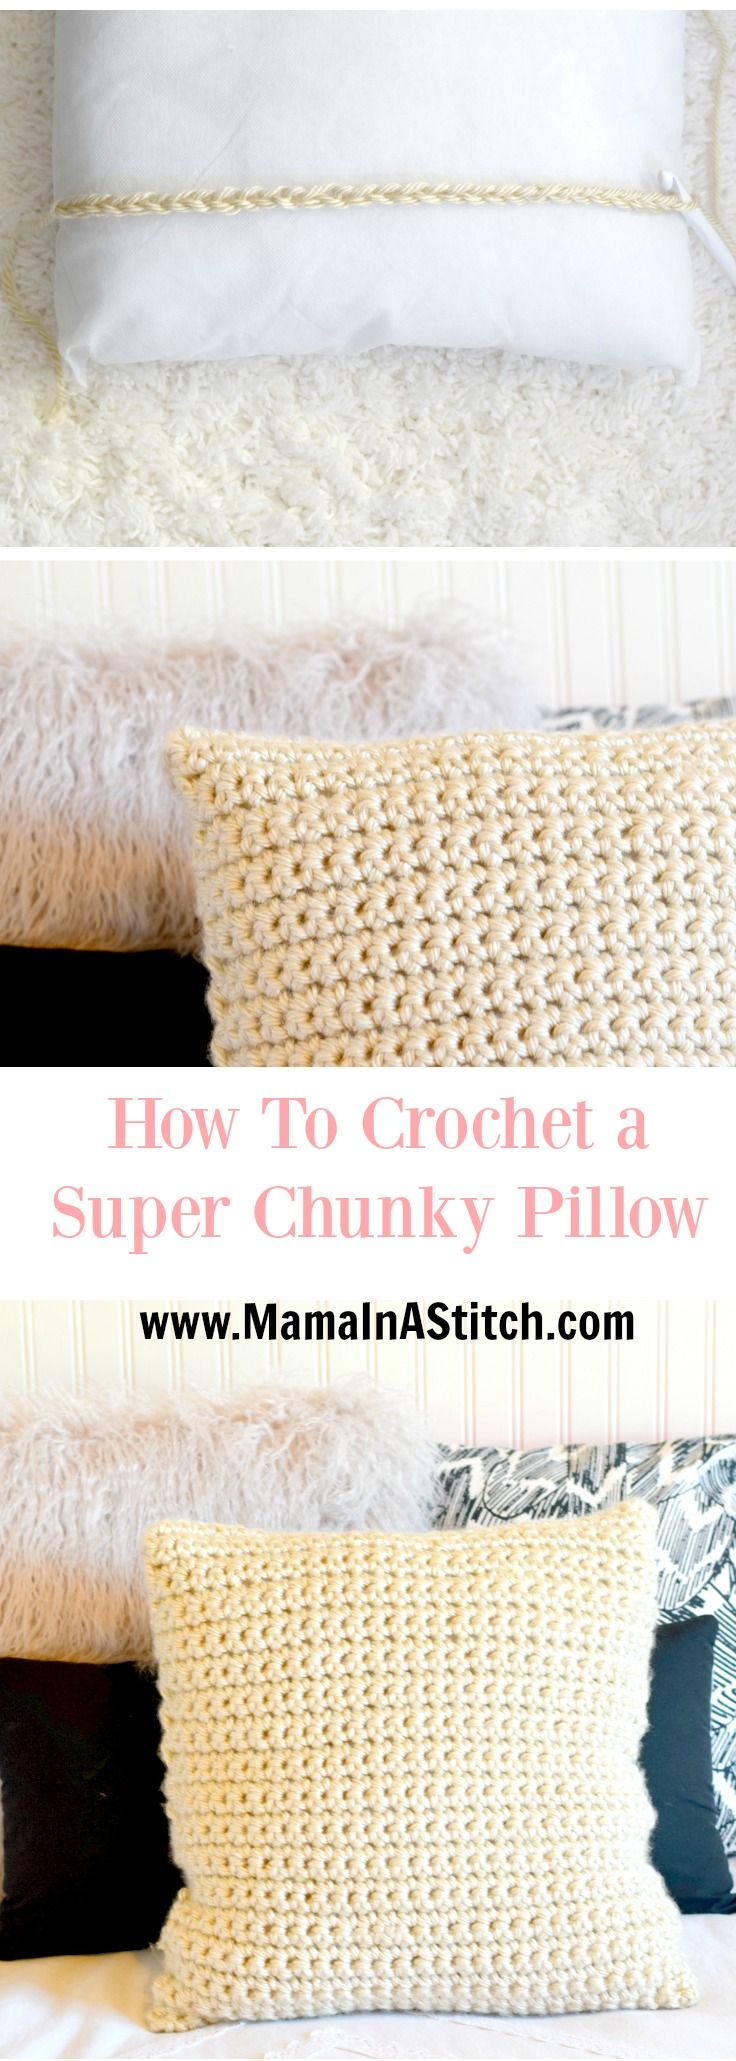 Super chunky crochet pillow project via mamainastitch crafts super chunky crochet pillow project via mama in a stitch knit and crochet patterns jessica free crochet pattern for an easy chunky crocheted pillow bankloansurffo Image collections